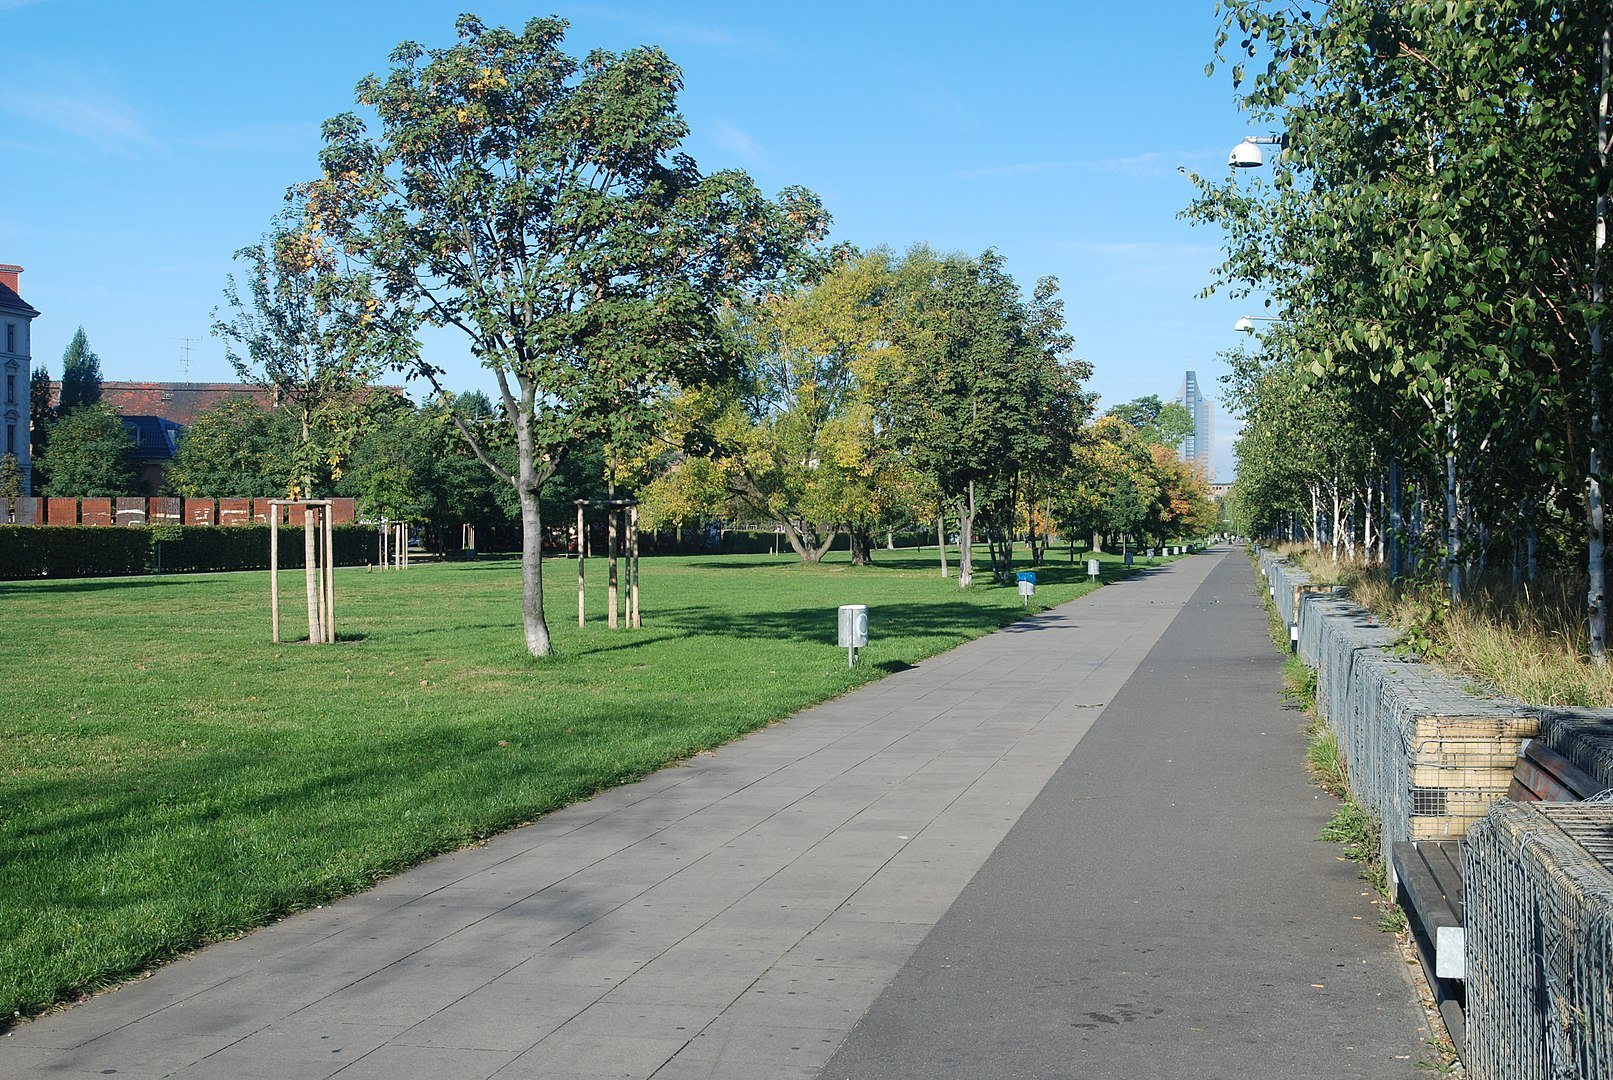 Der Lene-Voigt-Park ist Teil des Parkbogen Ost (By Prolineserver - Own work, CC BY-SA 3.0, https://commons.wikimedia.org/w/index.php?curid=2852051)